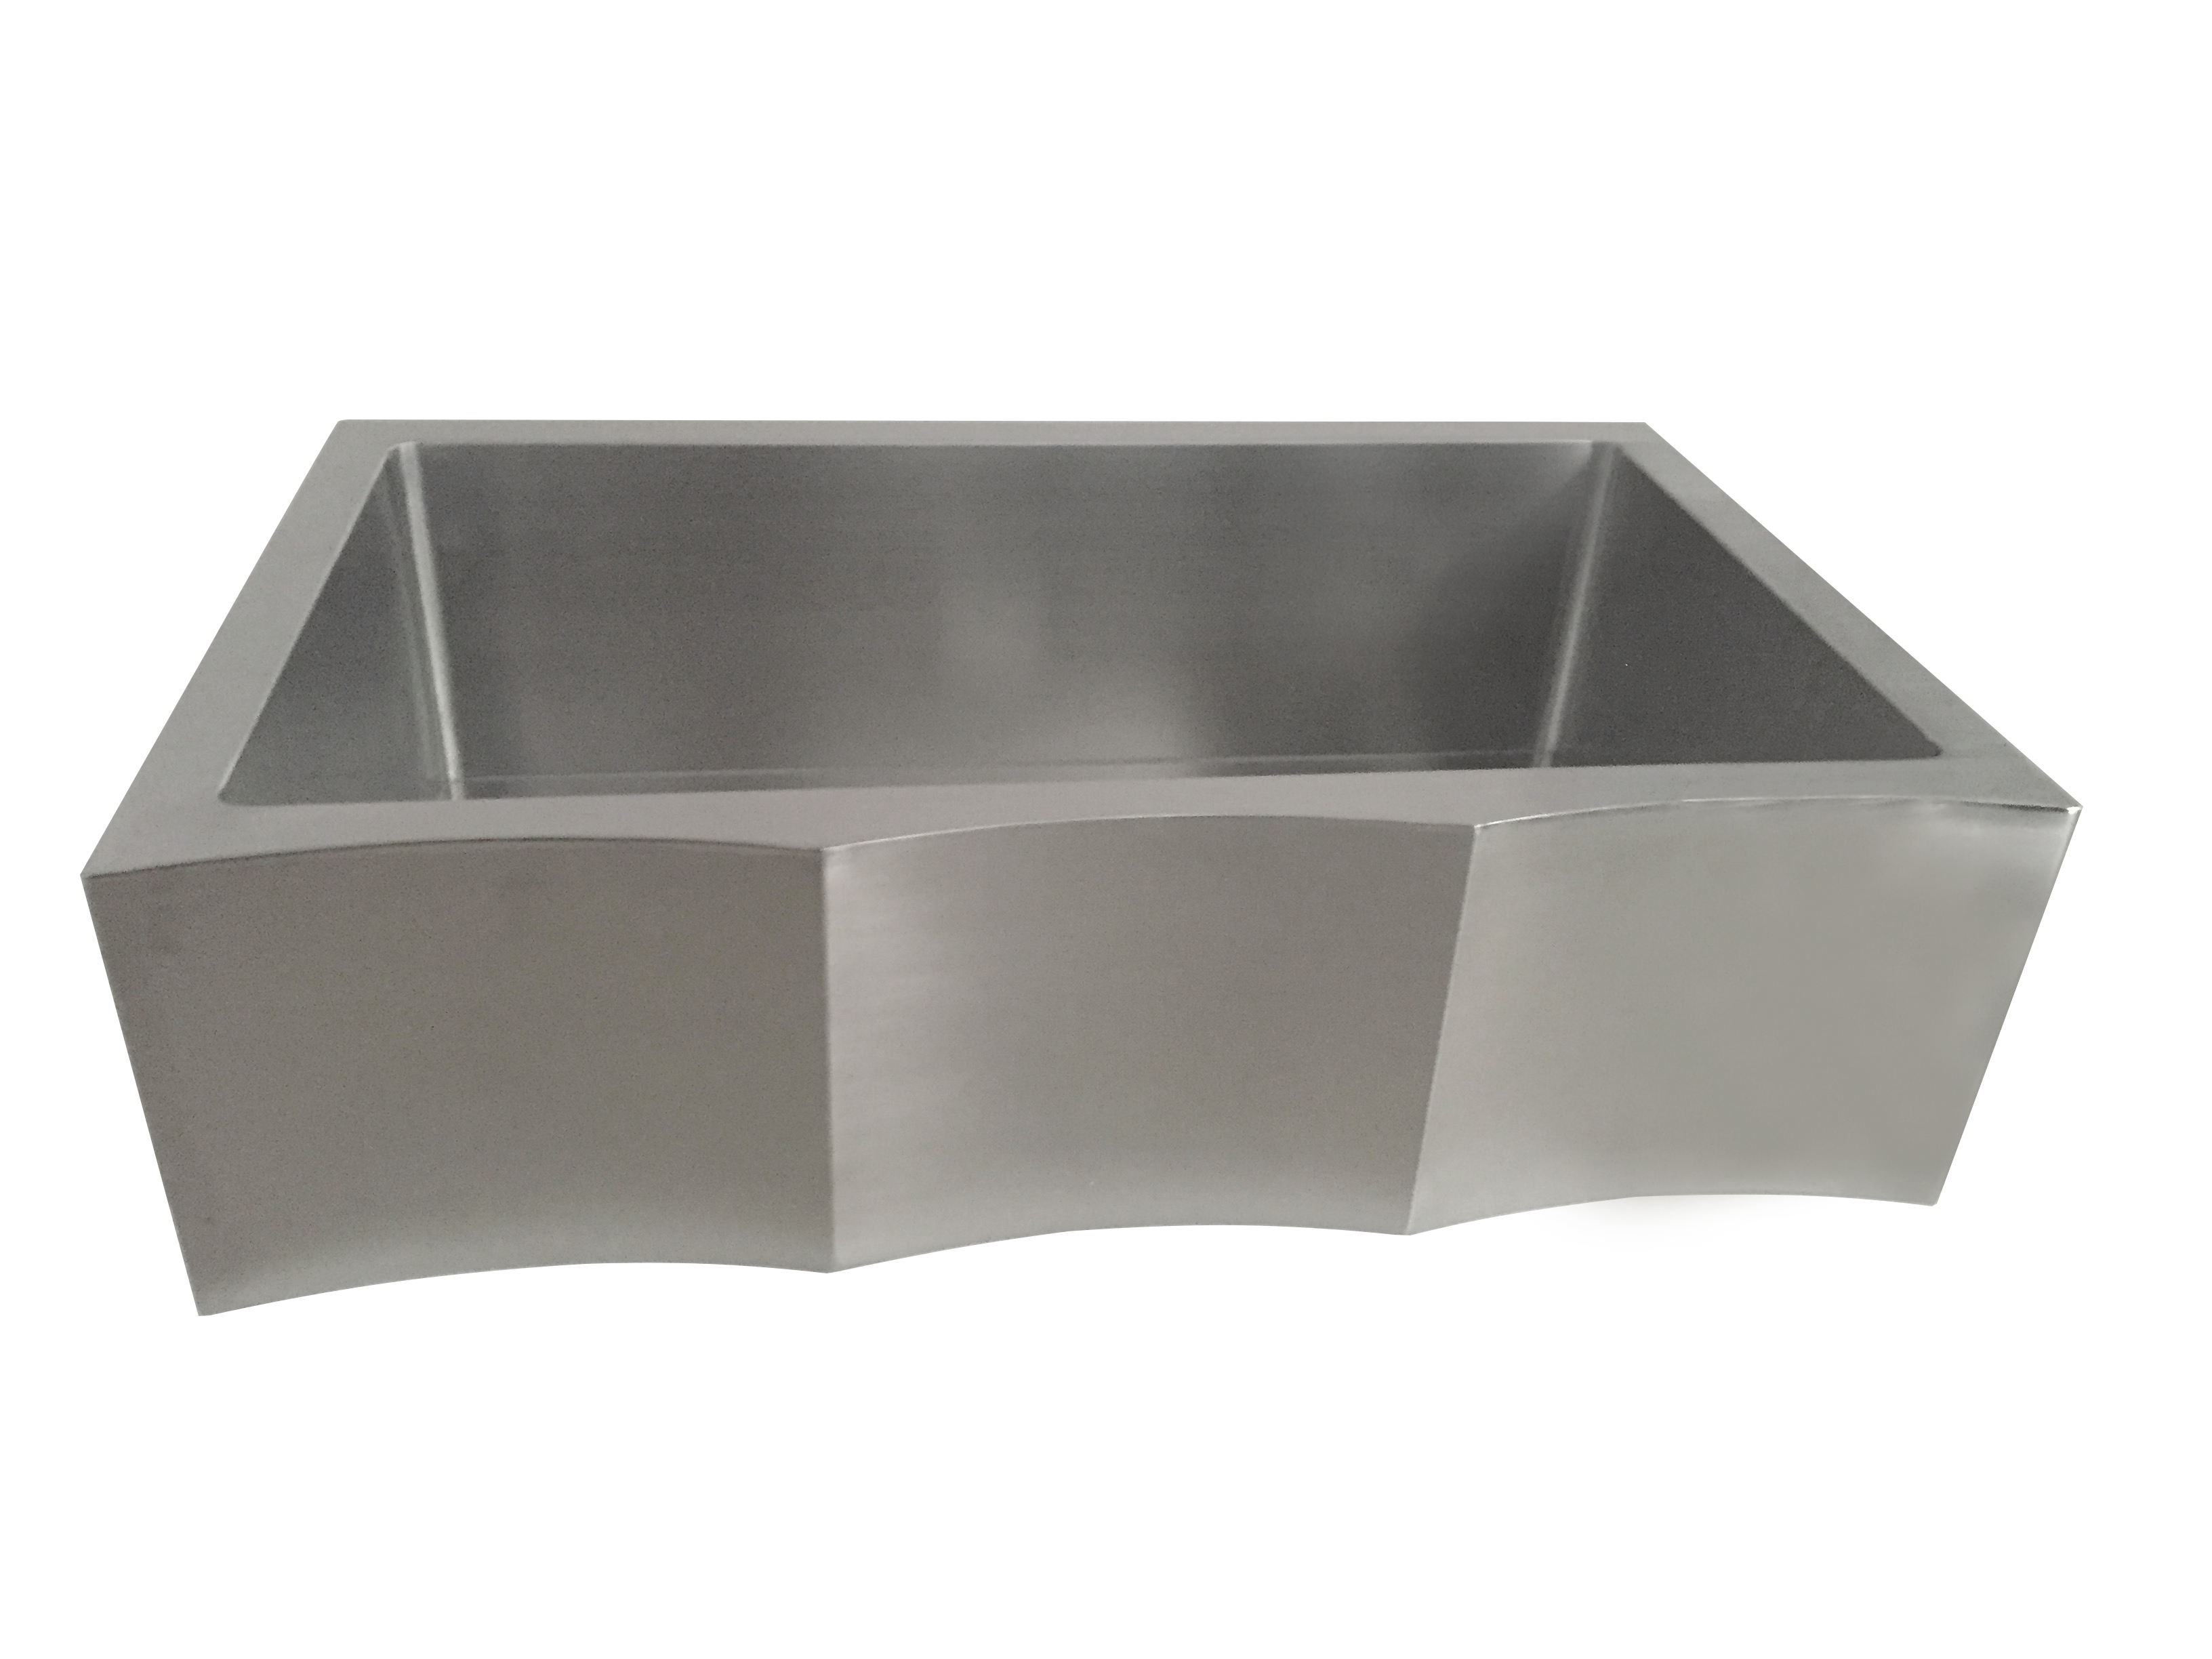 as 36 22 10 18g single bowl apron legend stainless steel kitchen sink 36 kitchen sink Stainless Steel Kitchen Sink